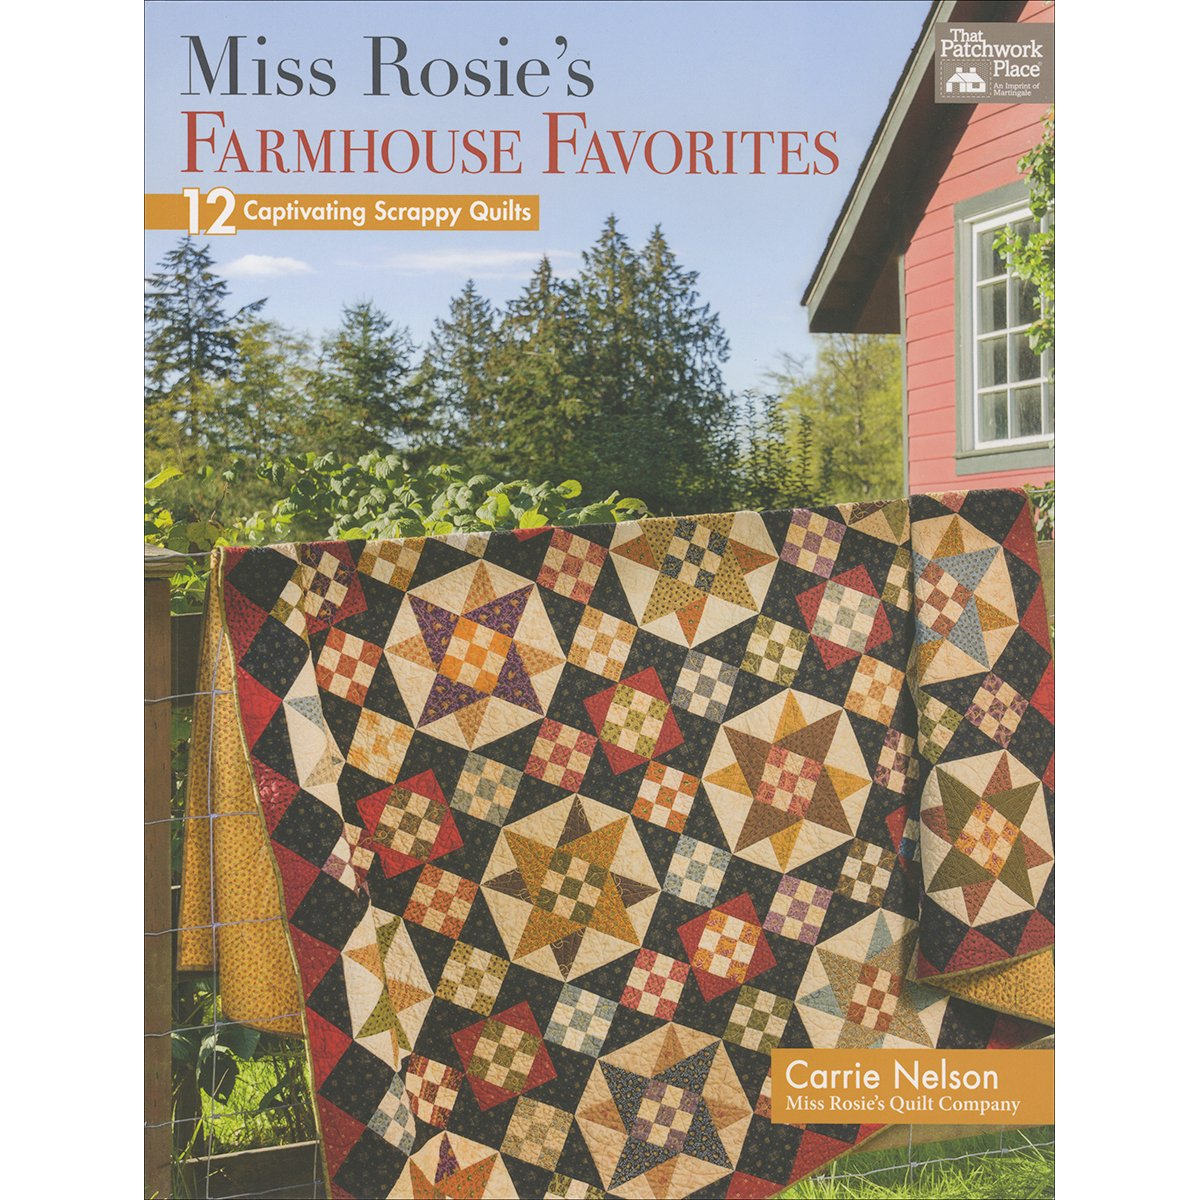 Miss Rosie's Farmhouse Favorites: 12 Captivating Scrappy Quilts